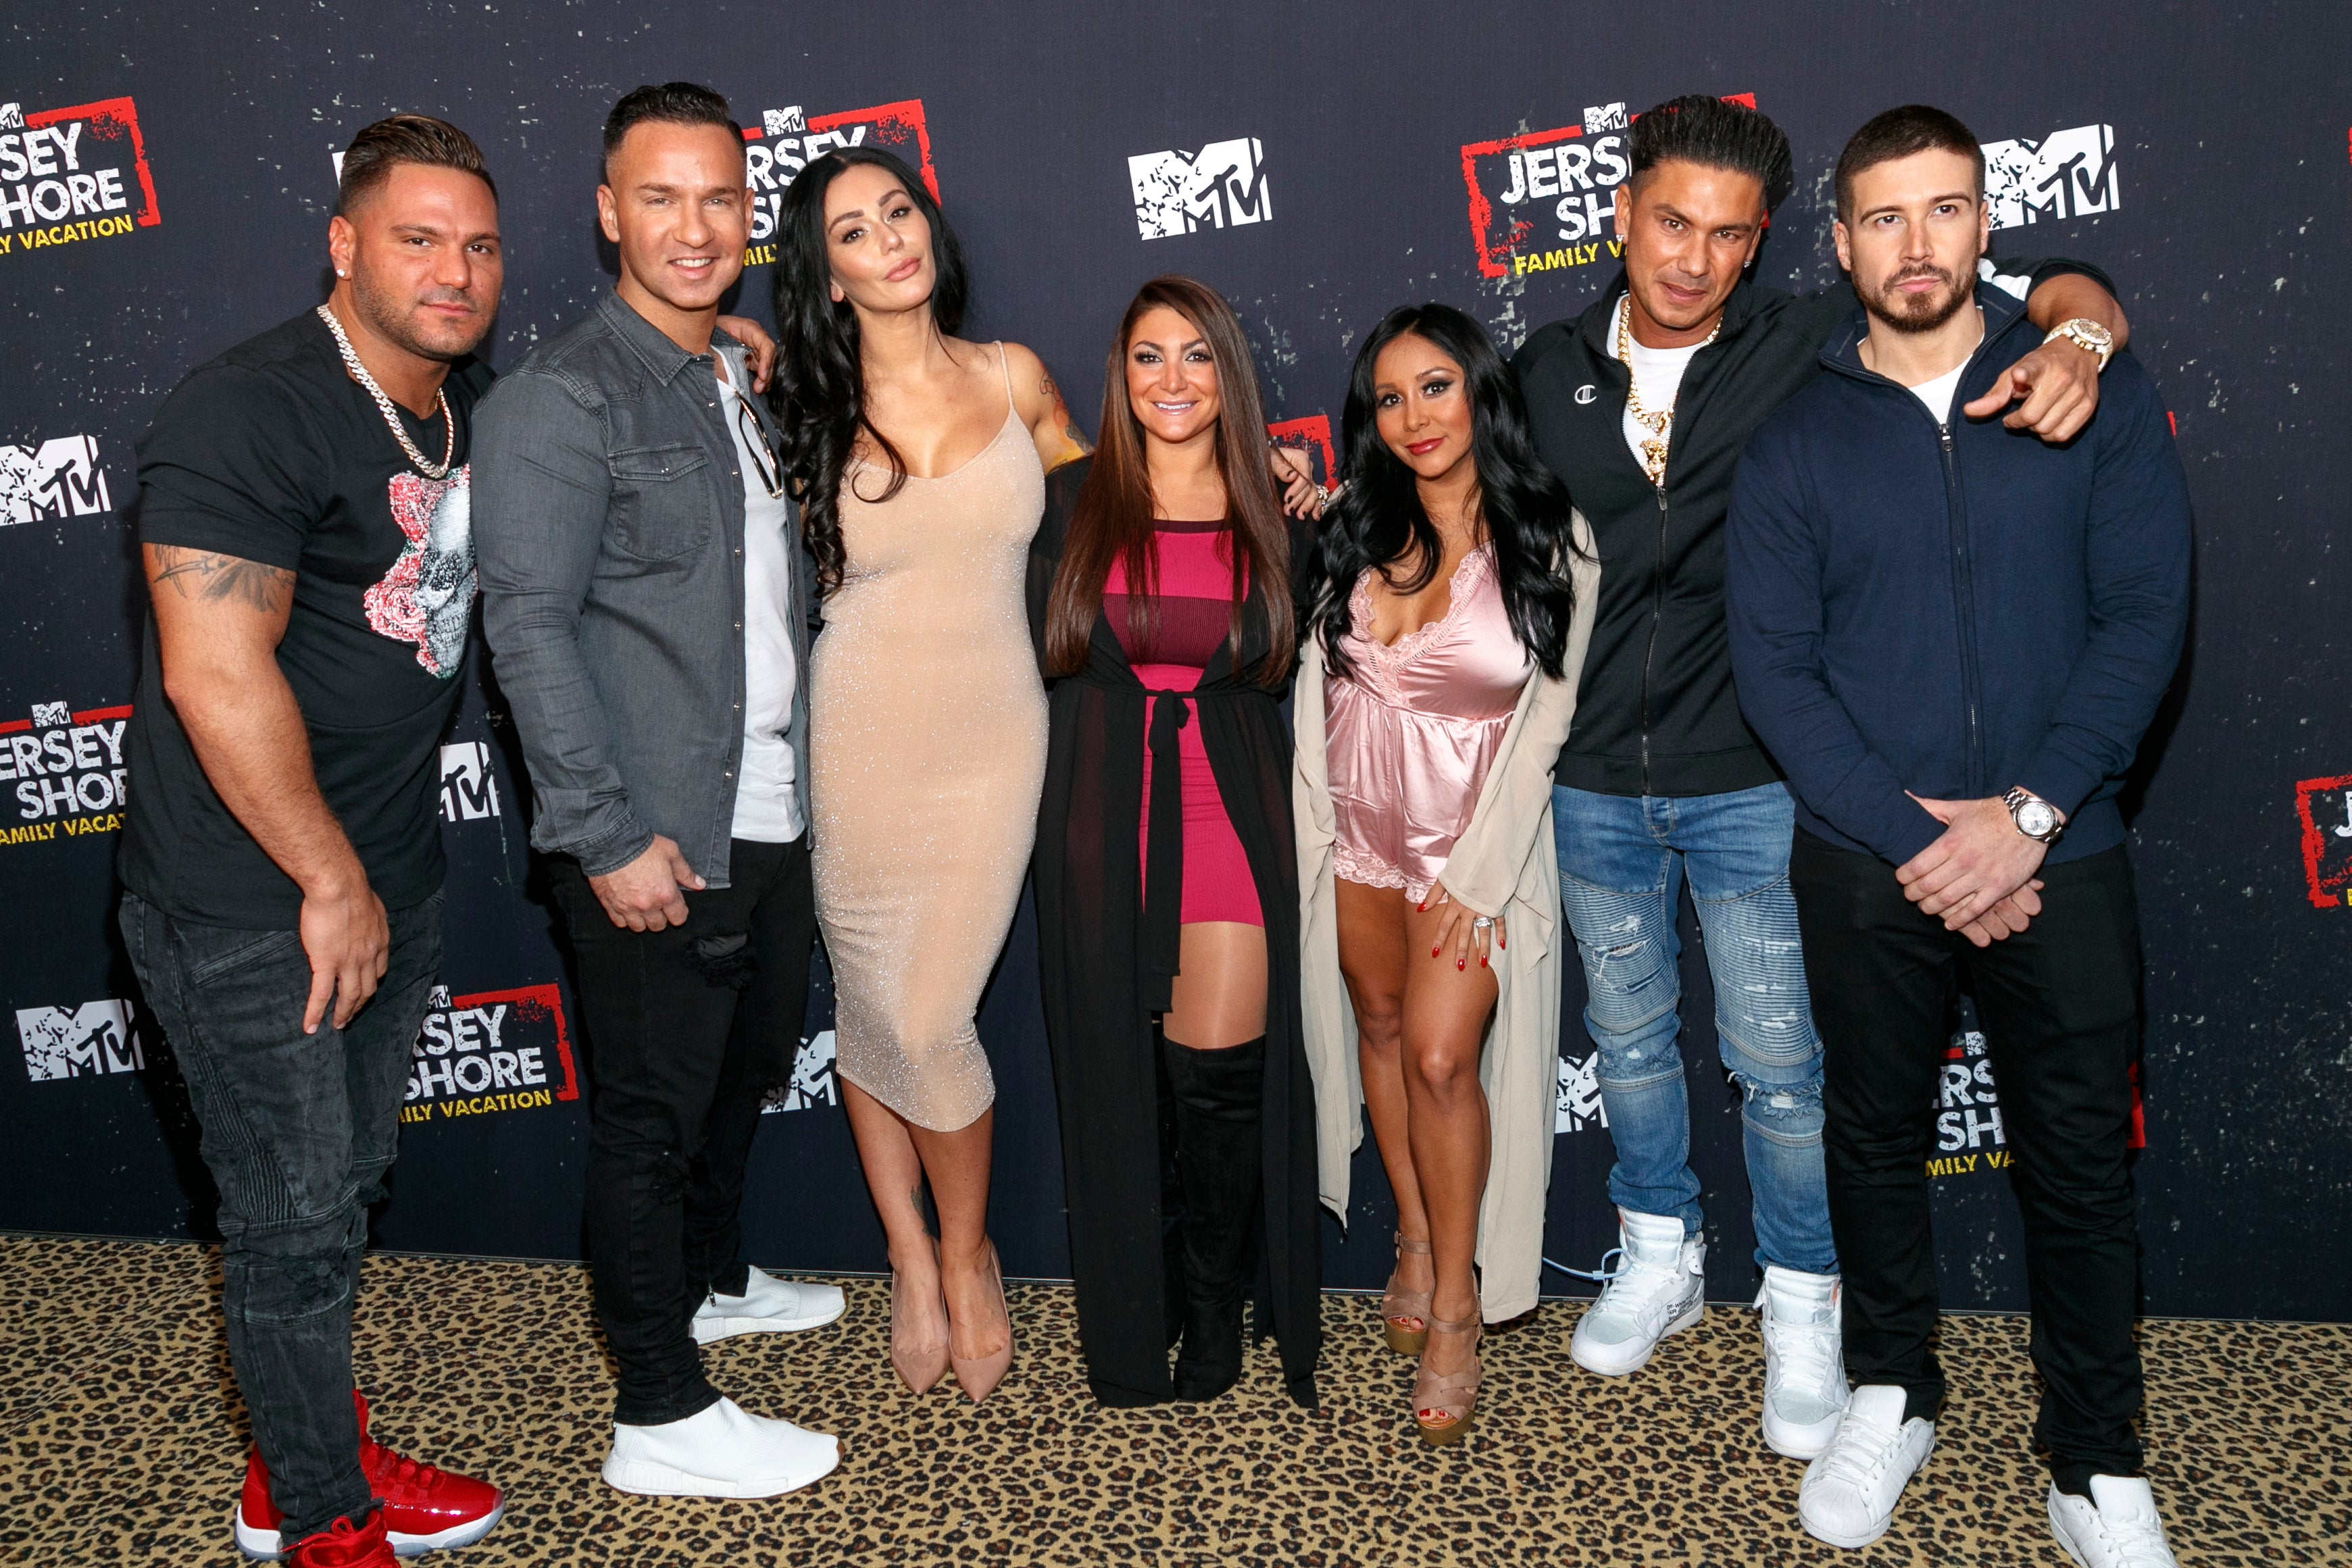 Jersey Shore Family Vacation Part 2 Trailer The Crew Heads To